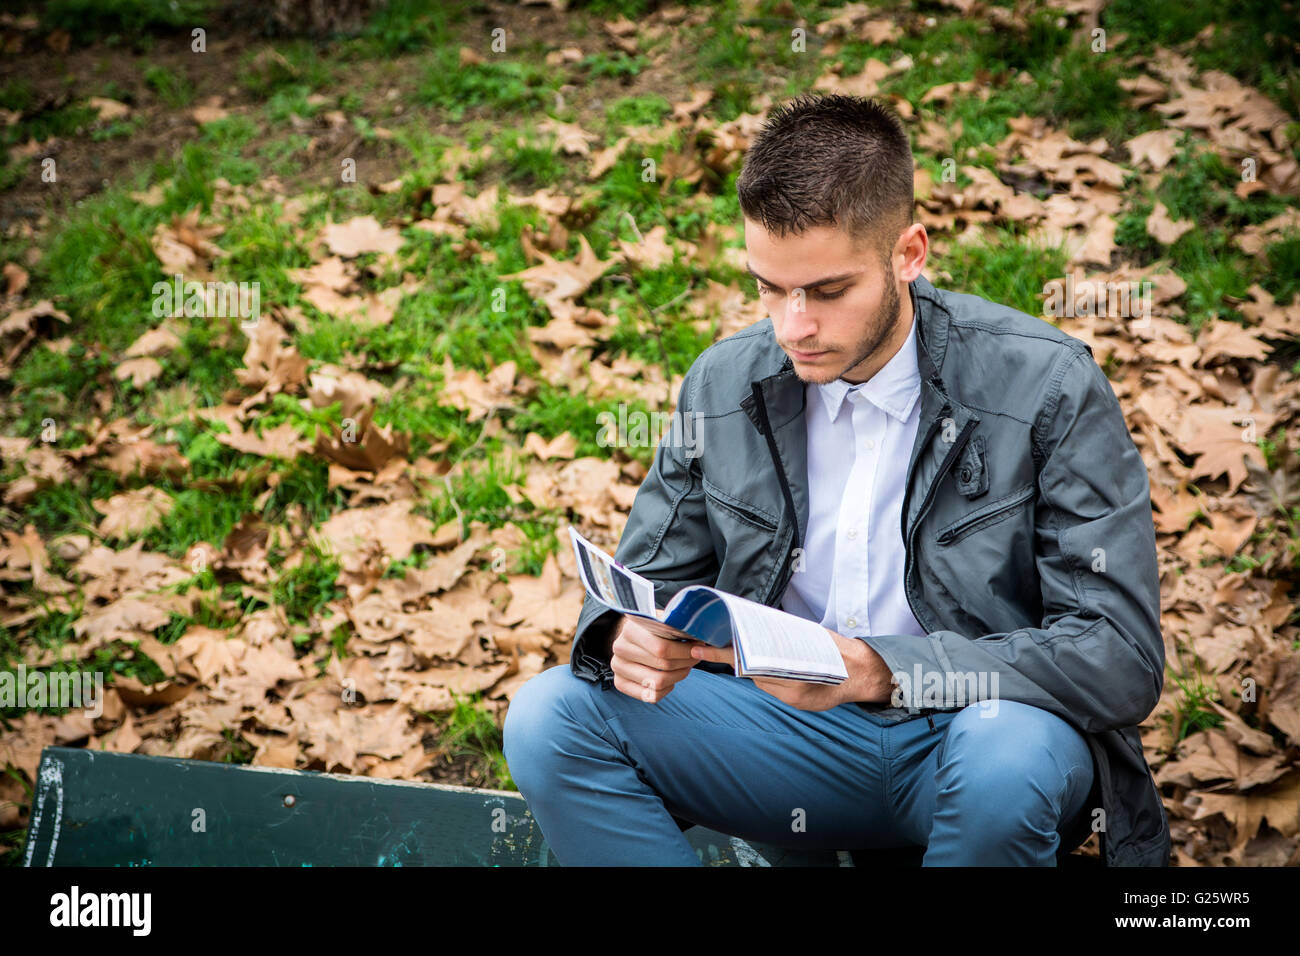 Jeune homme lecture brochure while sitting on bench in park Photo Stock